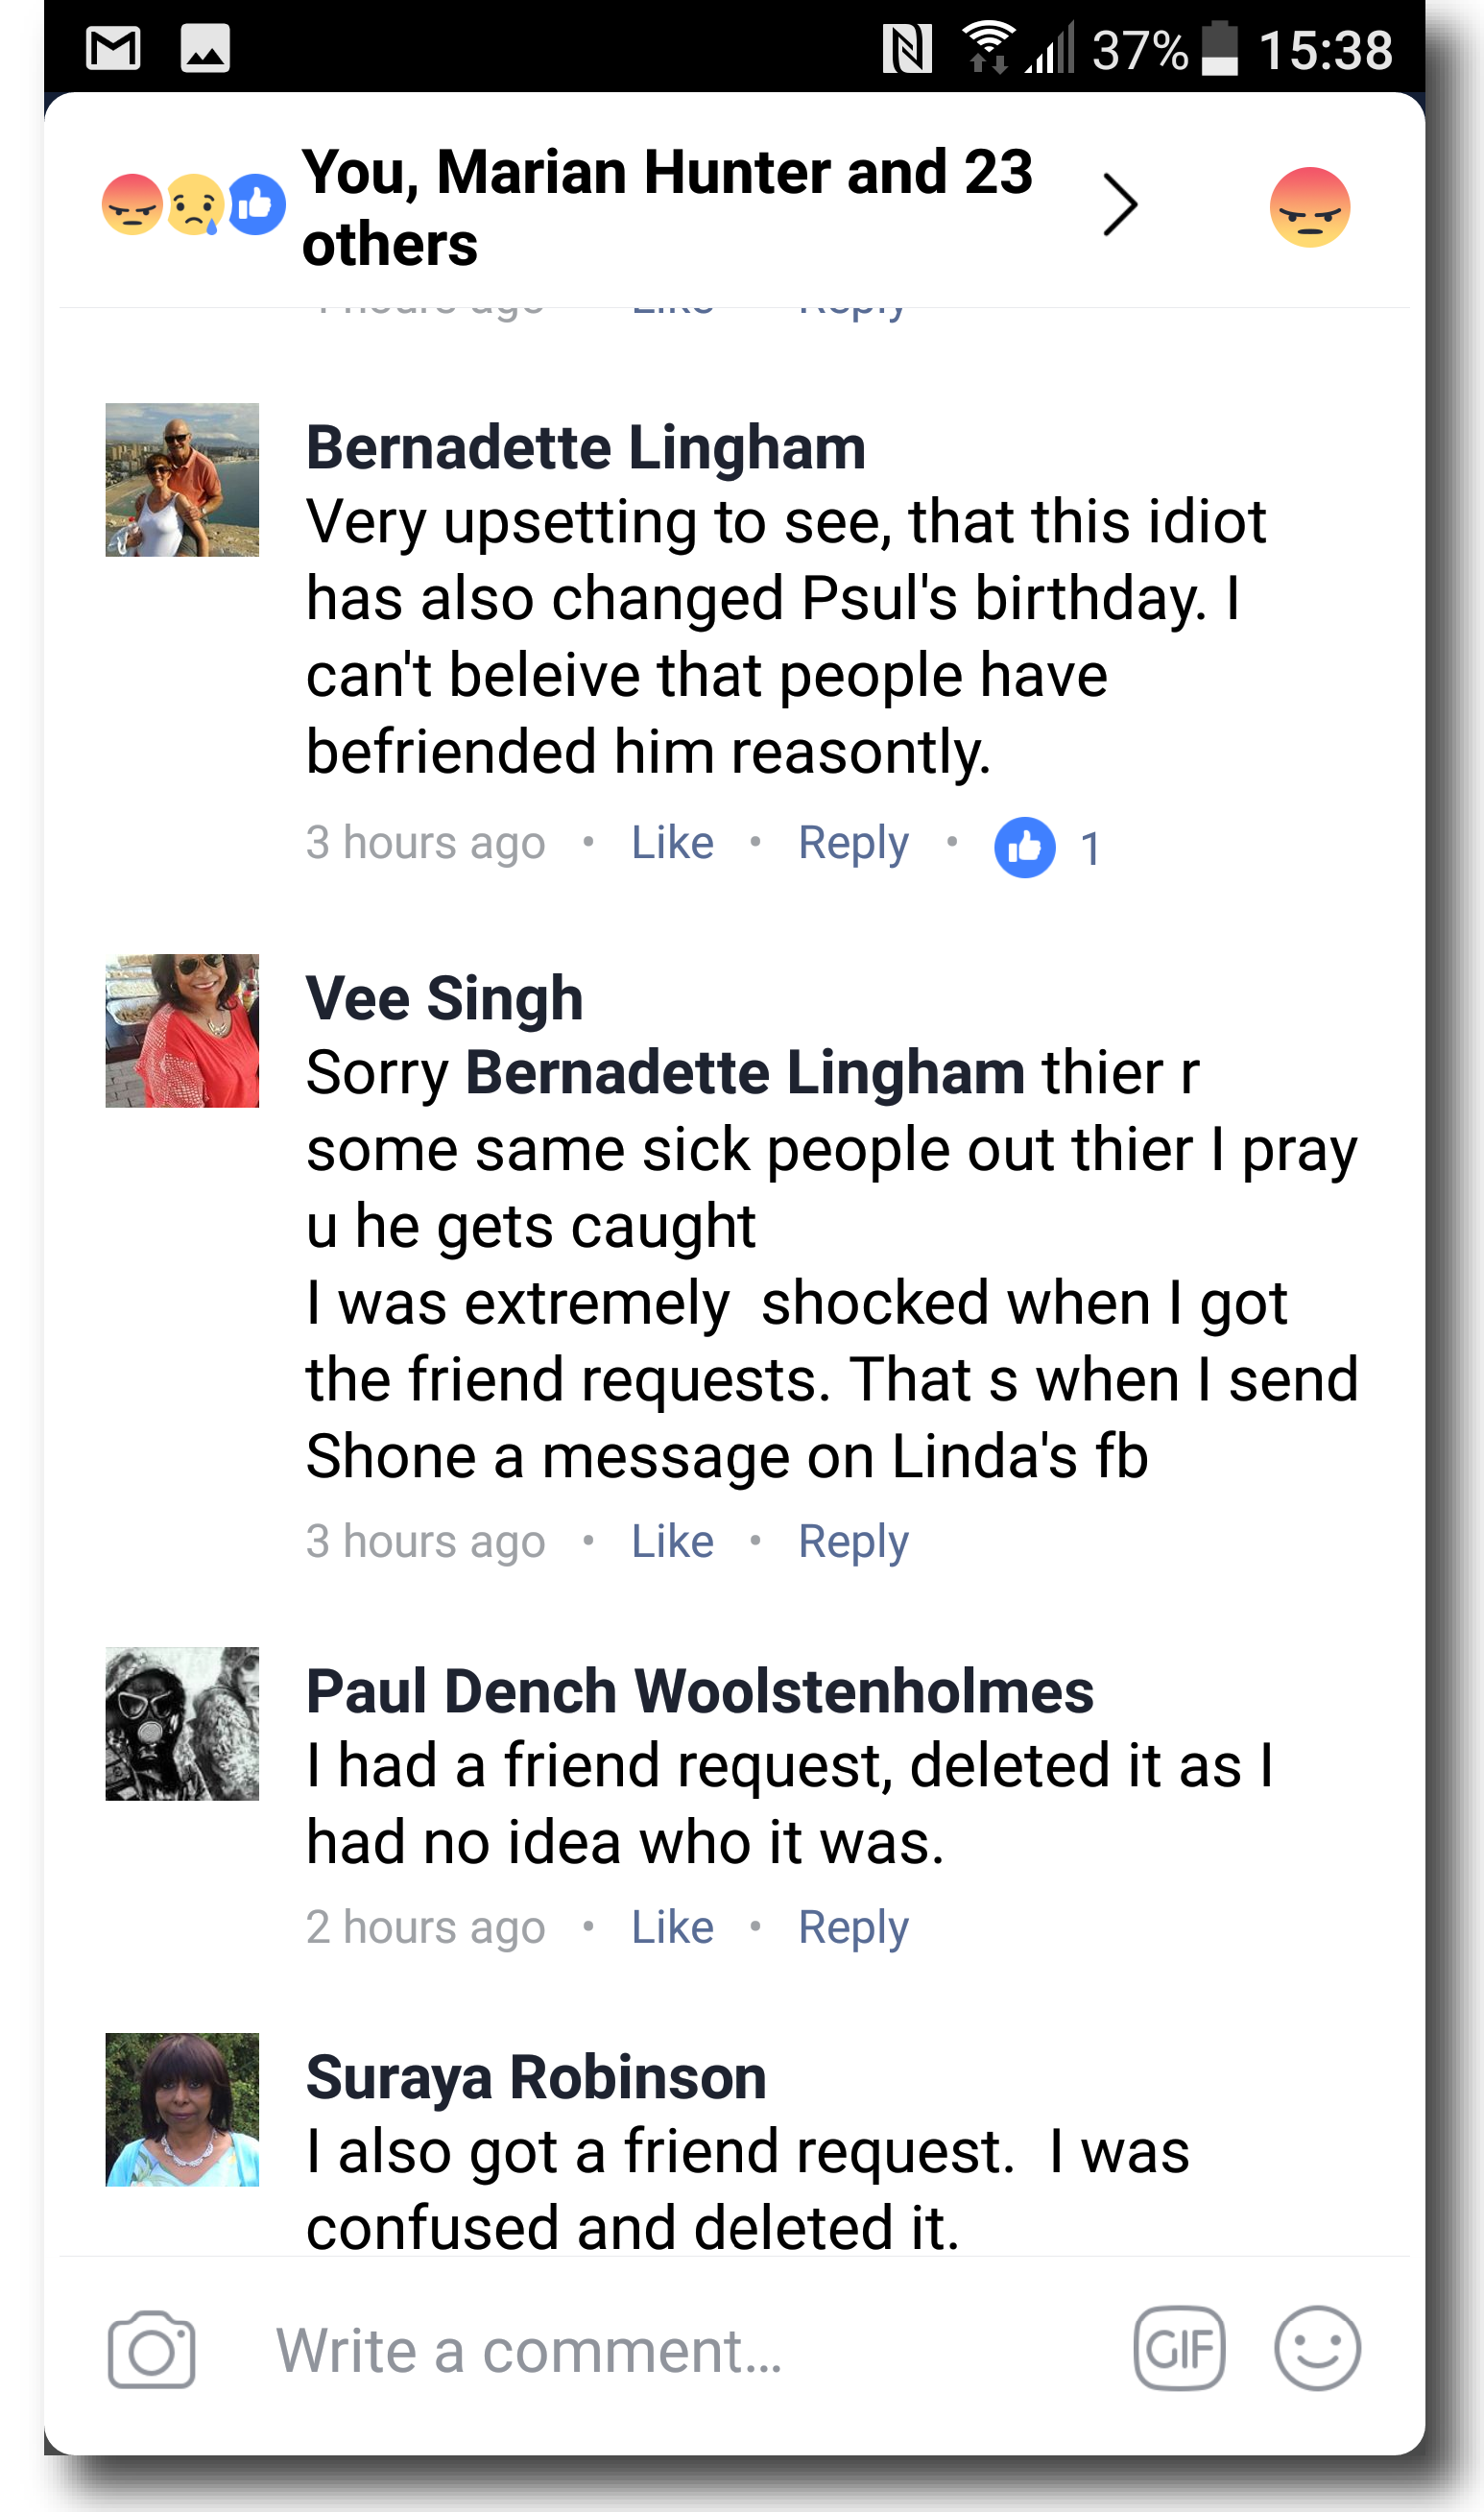 The hijacking of Paul Lingham's Facebook account - Erin